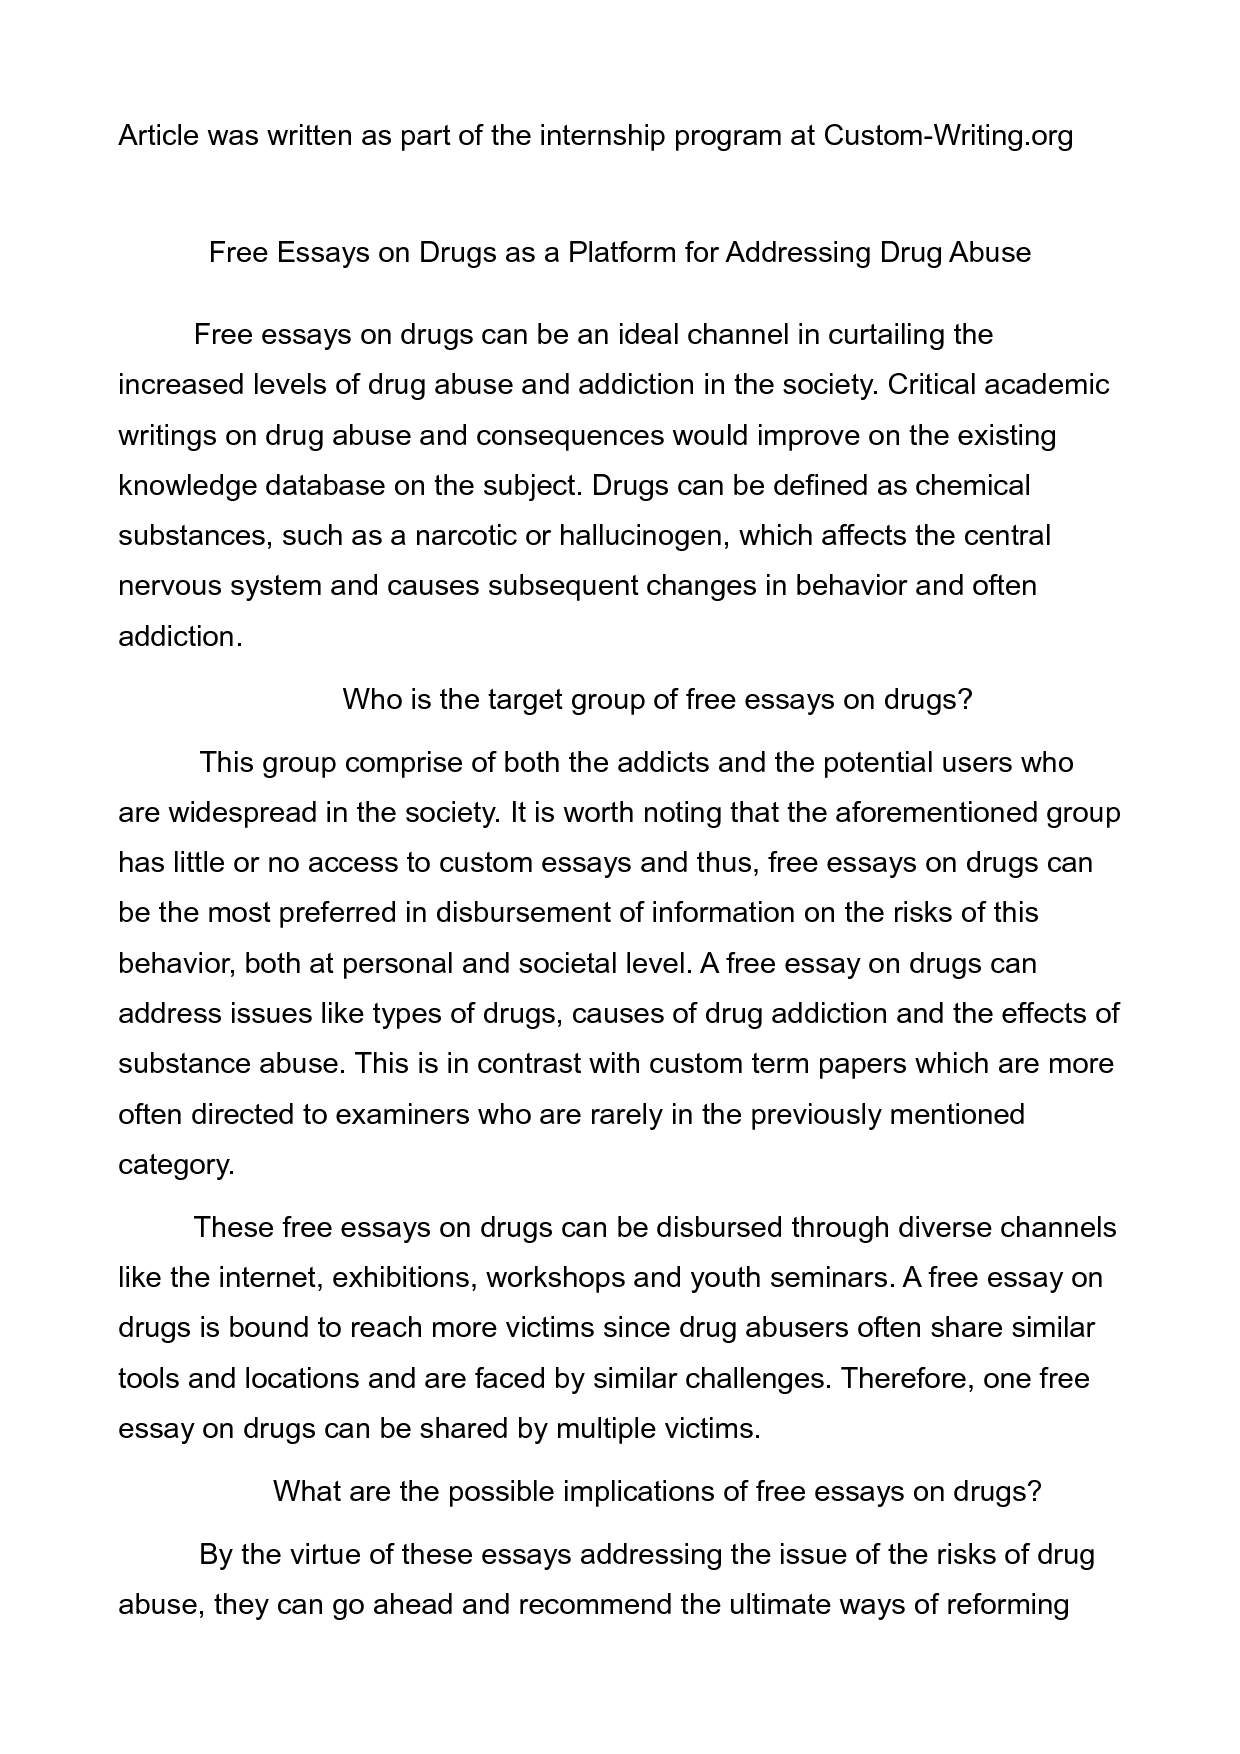 009 Argumentative Essay About Drugs Amazing Sample 6th Grade Introduction Format Full